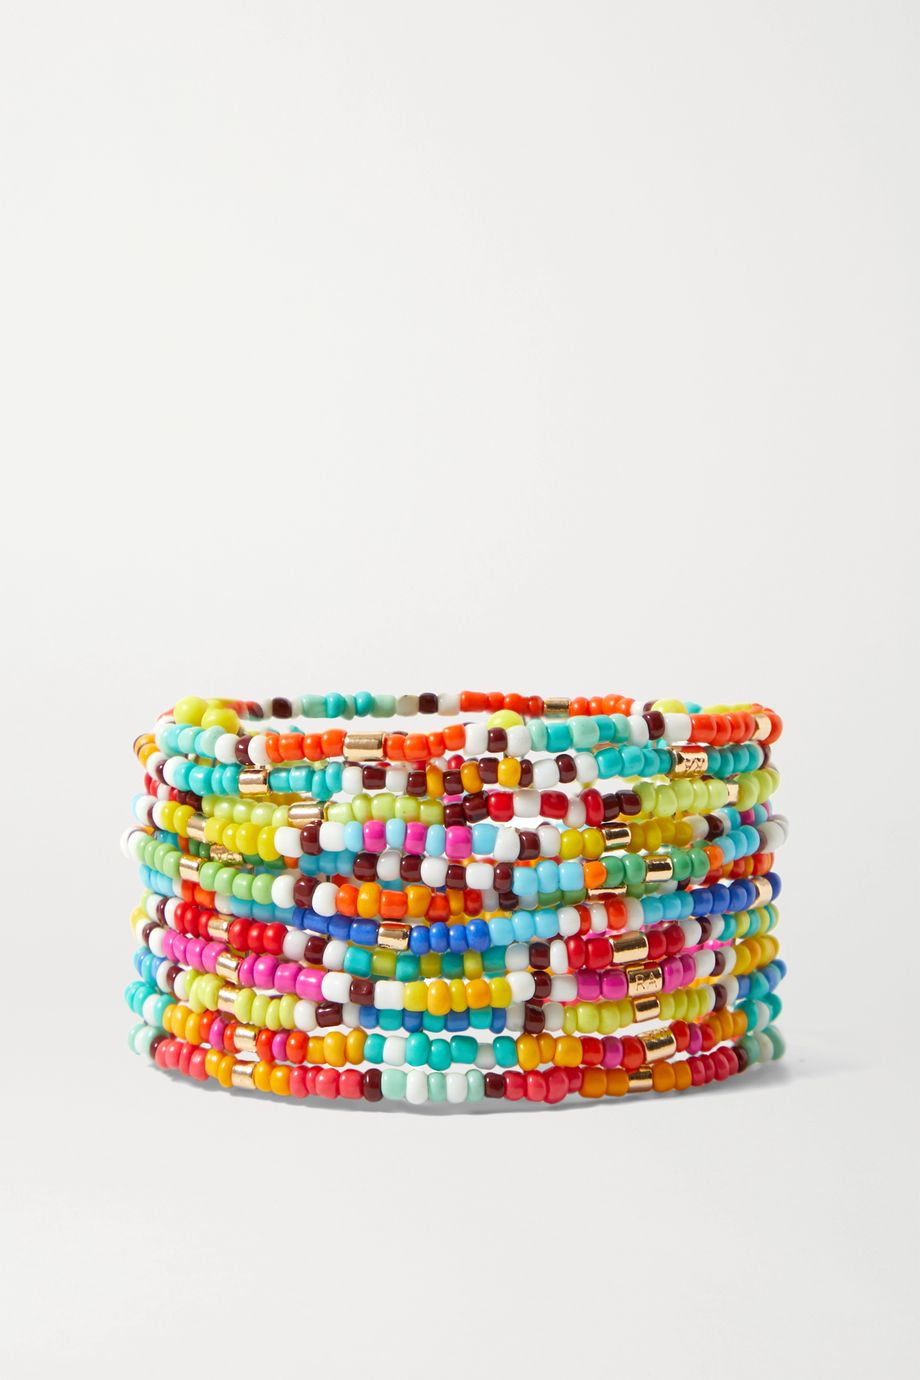 Roxanne Assoulin New Patchwork set of 12 beaded bracelets